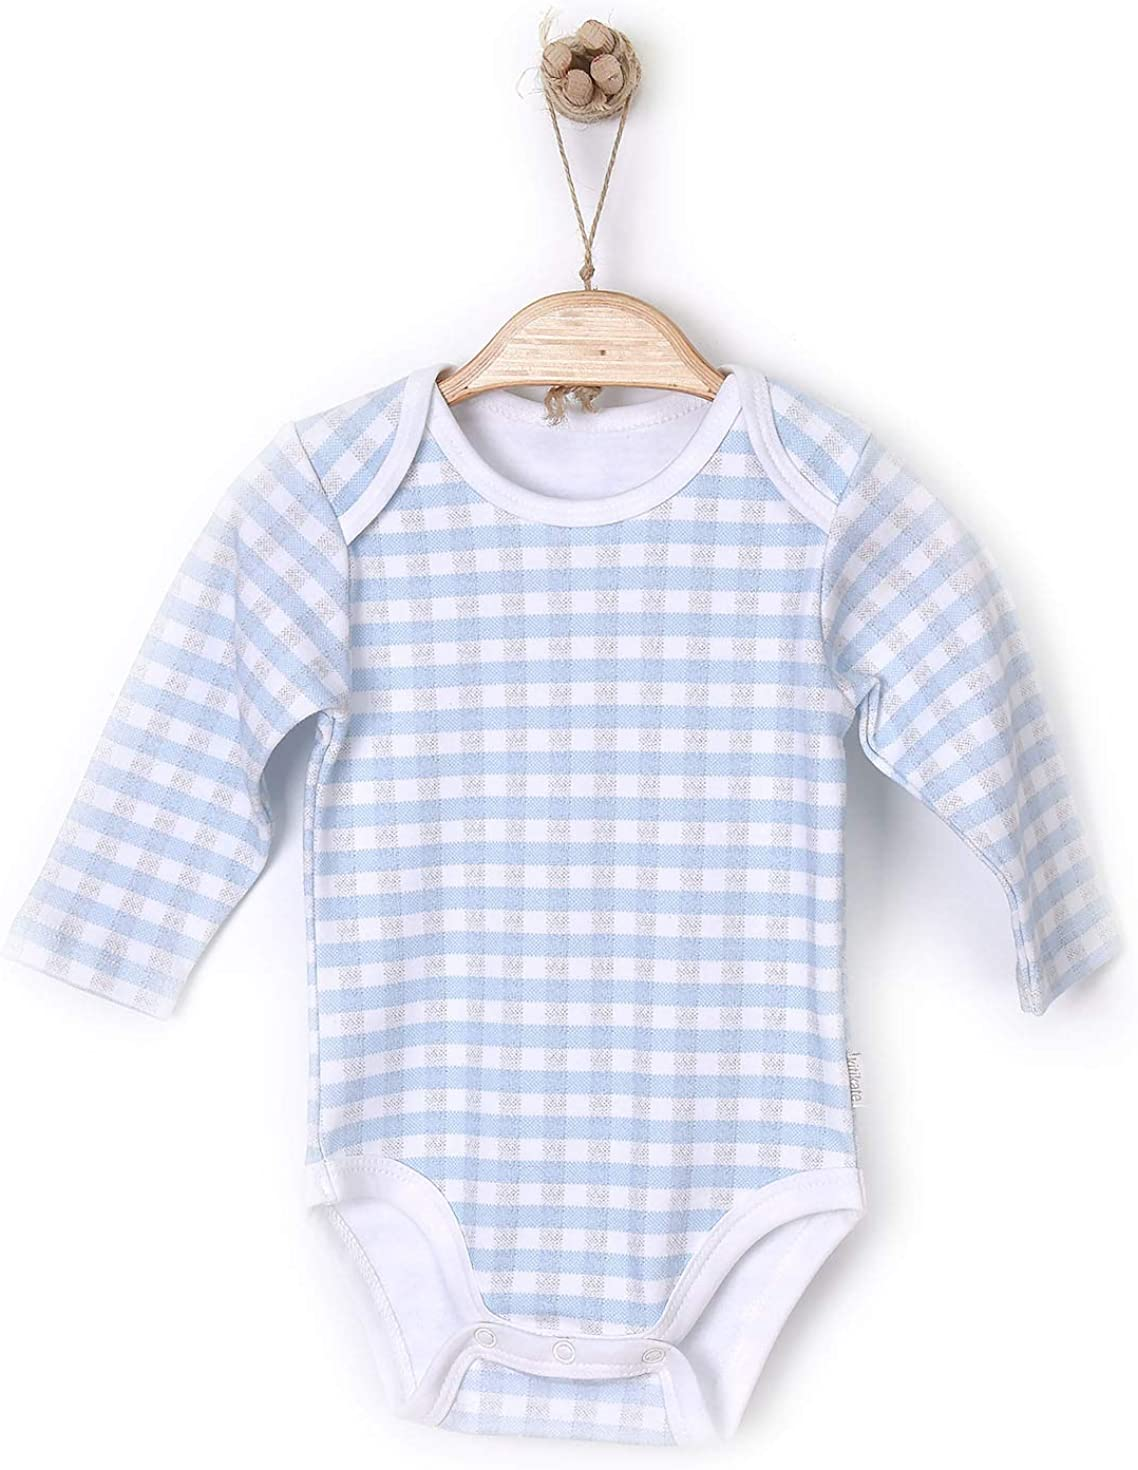 White /& Pink//Blue Perfect for Season Changes. Baby Boys /& Girls Long Sleeved Smooth Sleepsuits Clothes Baby Vests 0-24 Months Newborn Bodysuits